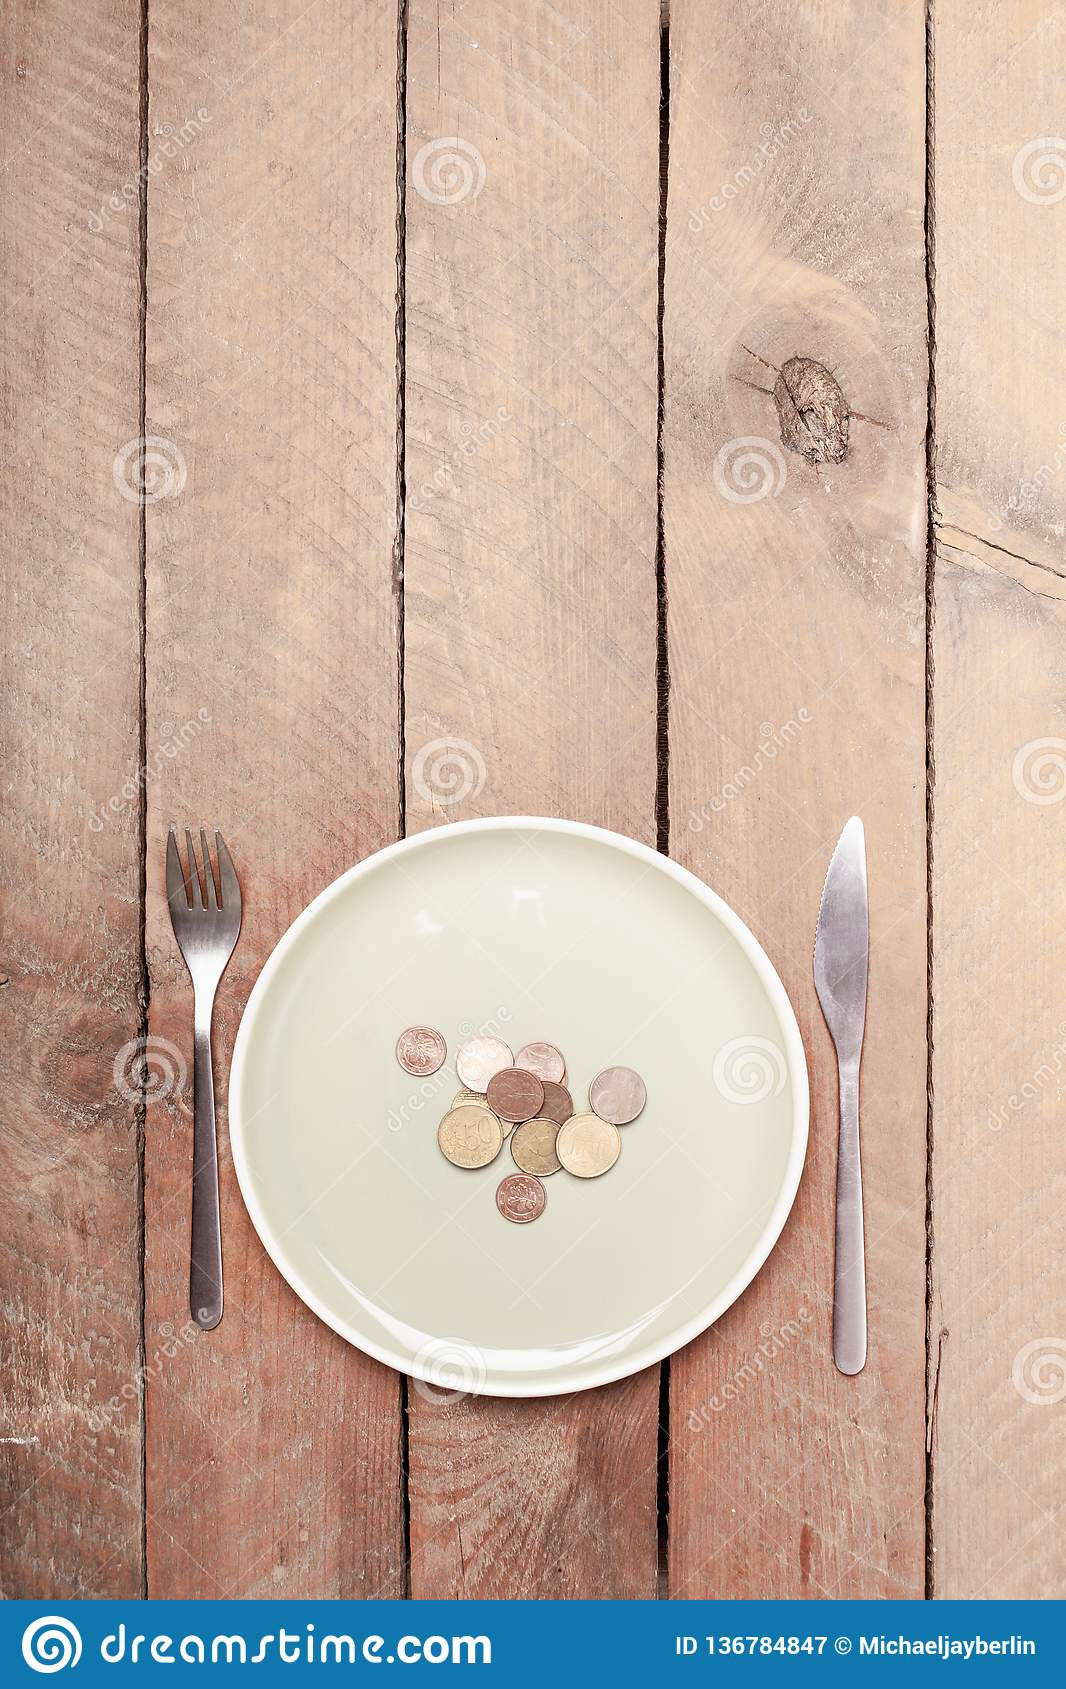 Empty pastel colored plate with coins